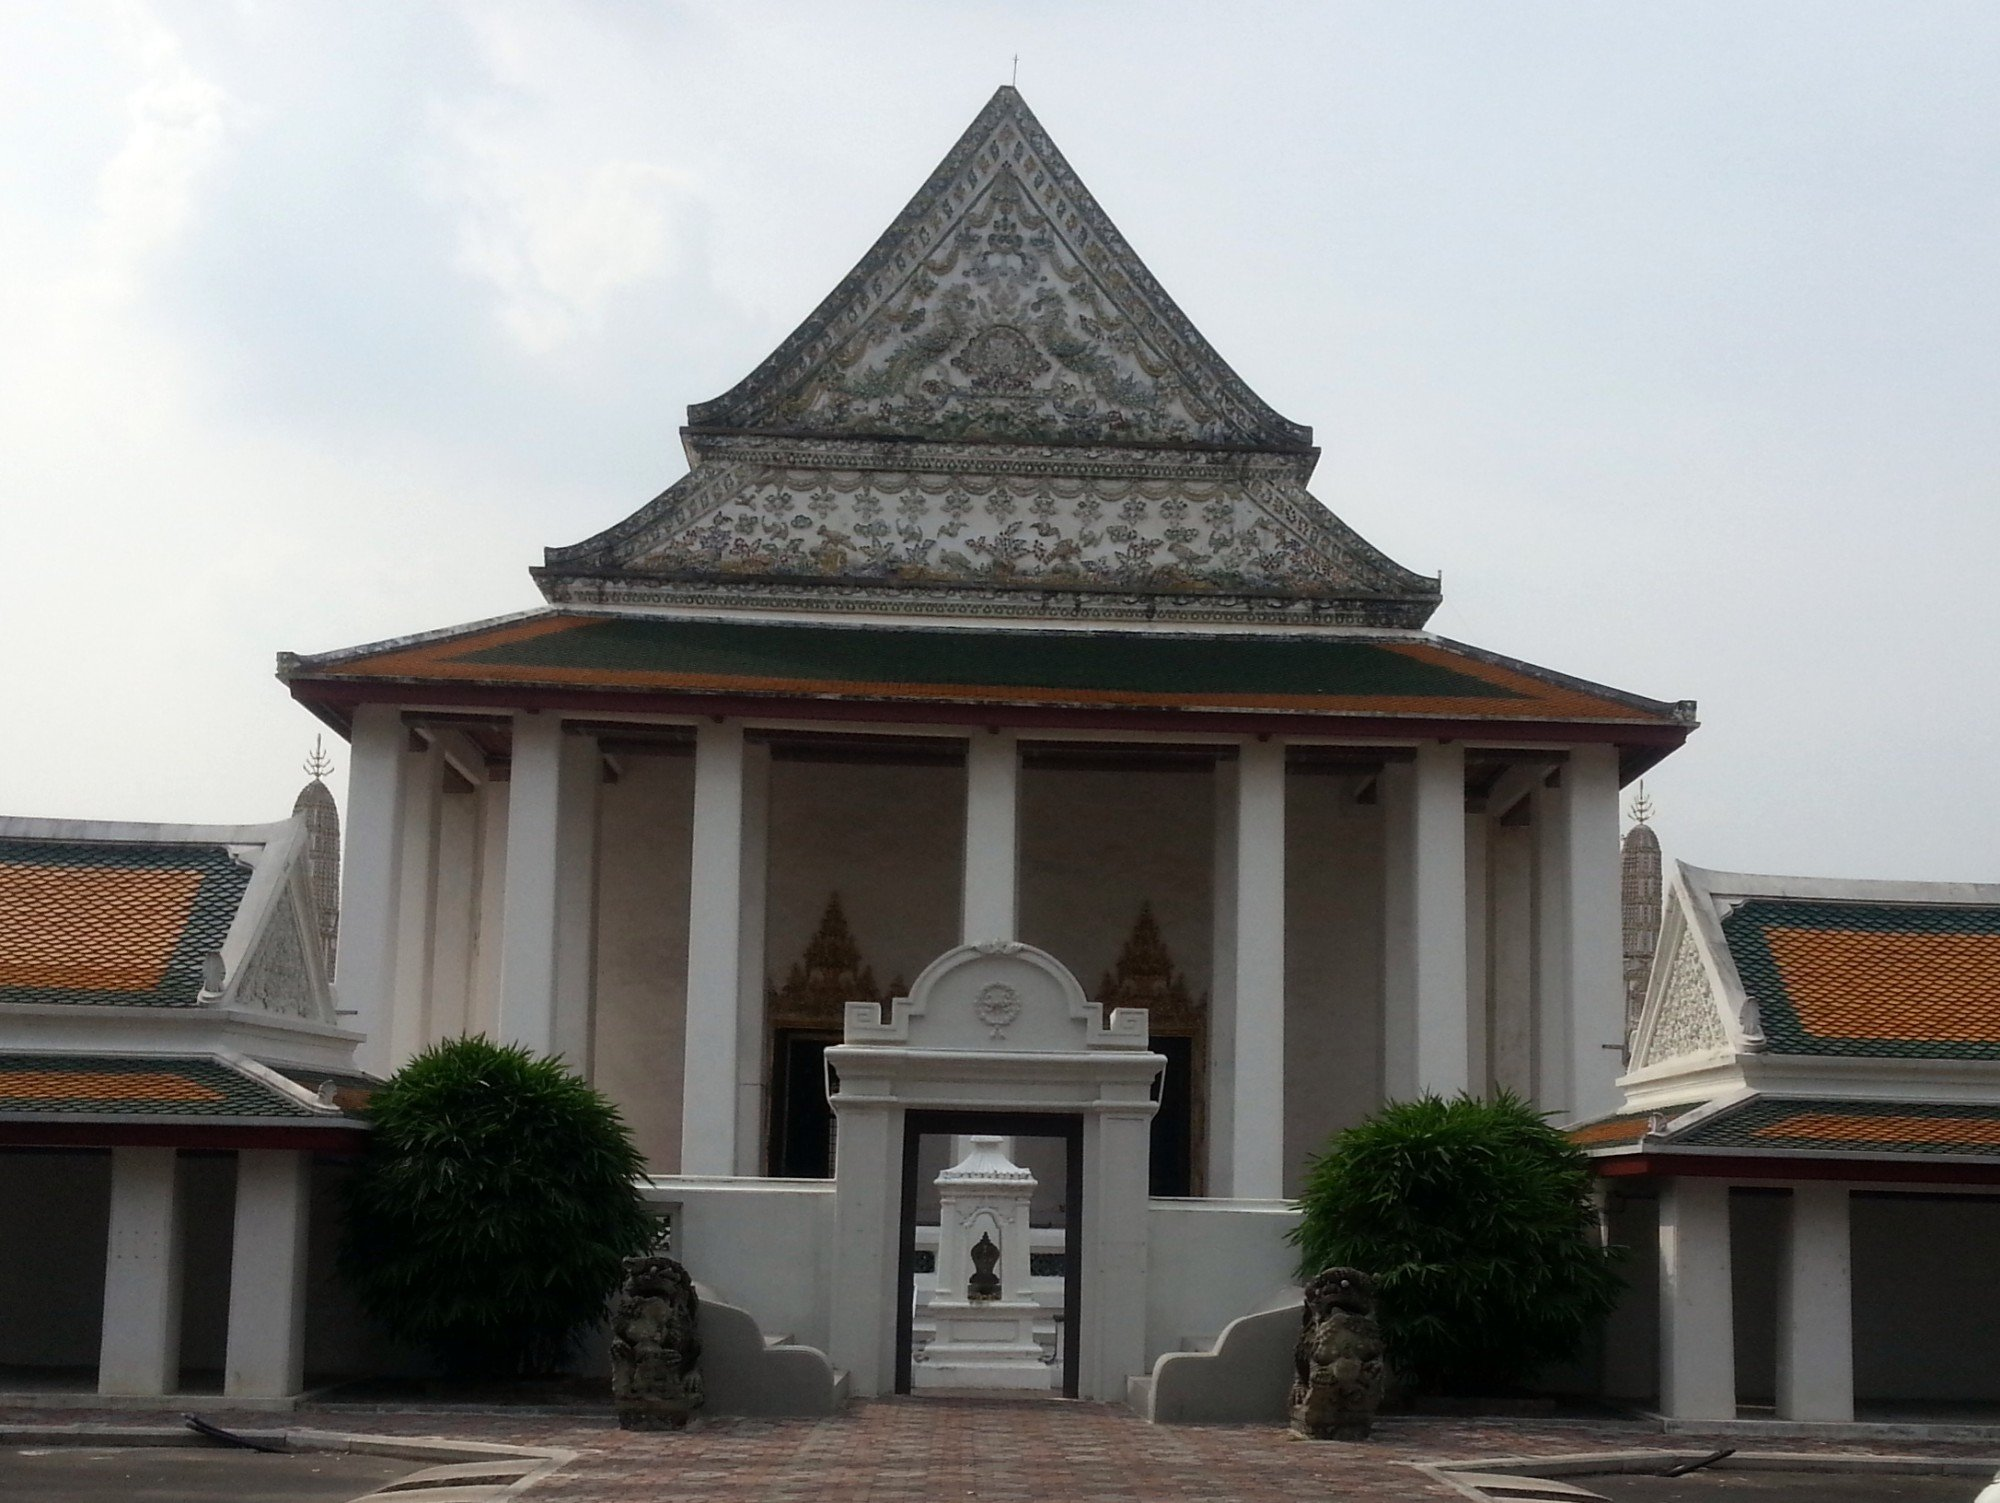 Ordination Hall at Wat Thepthidaram